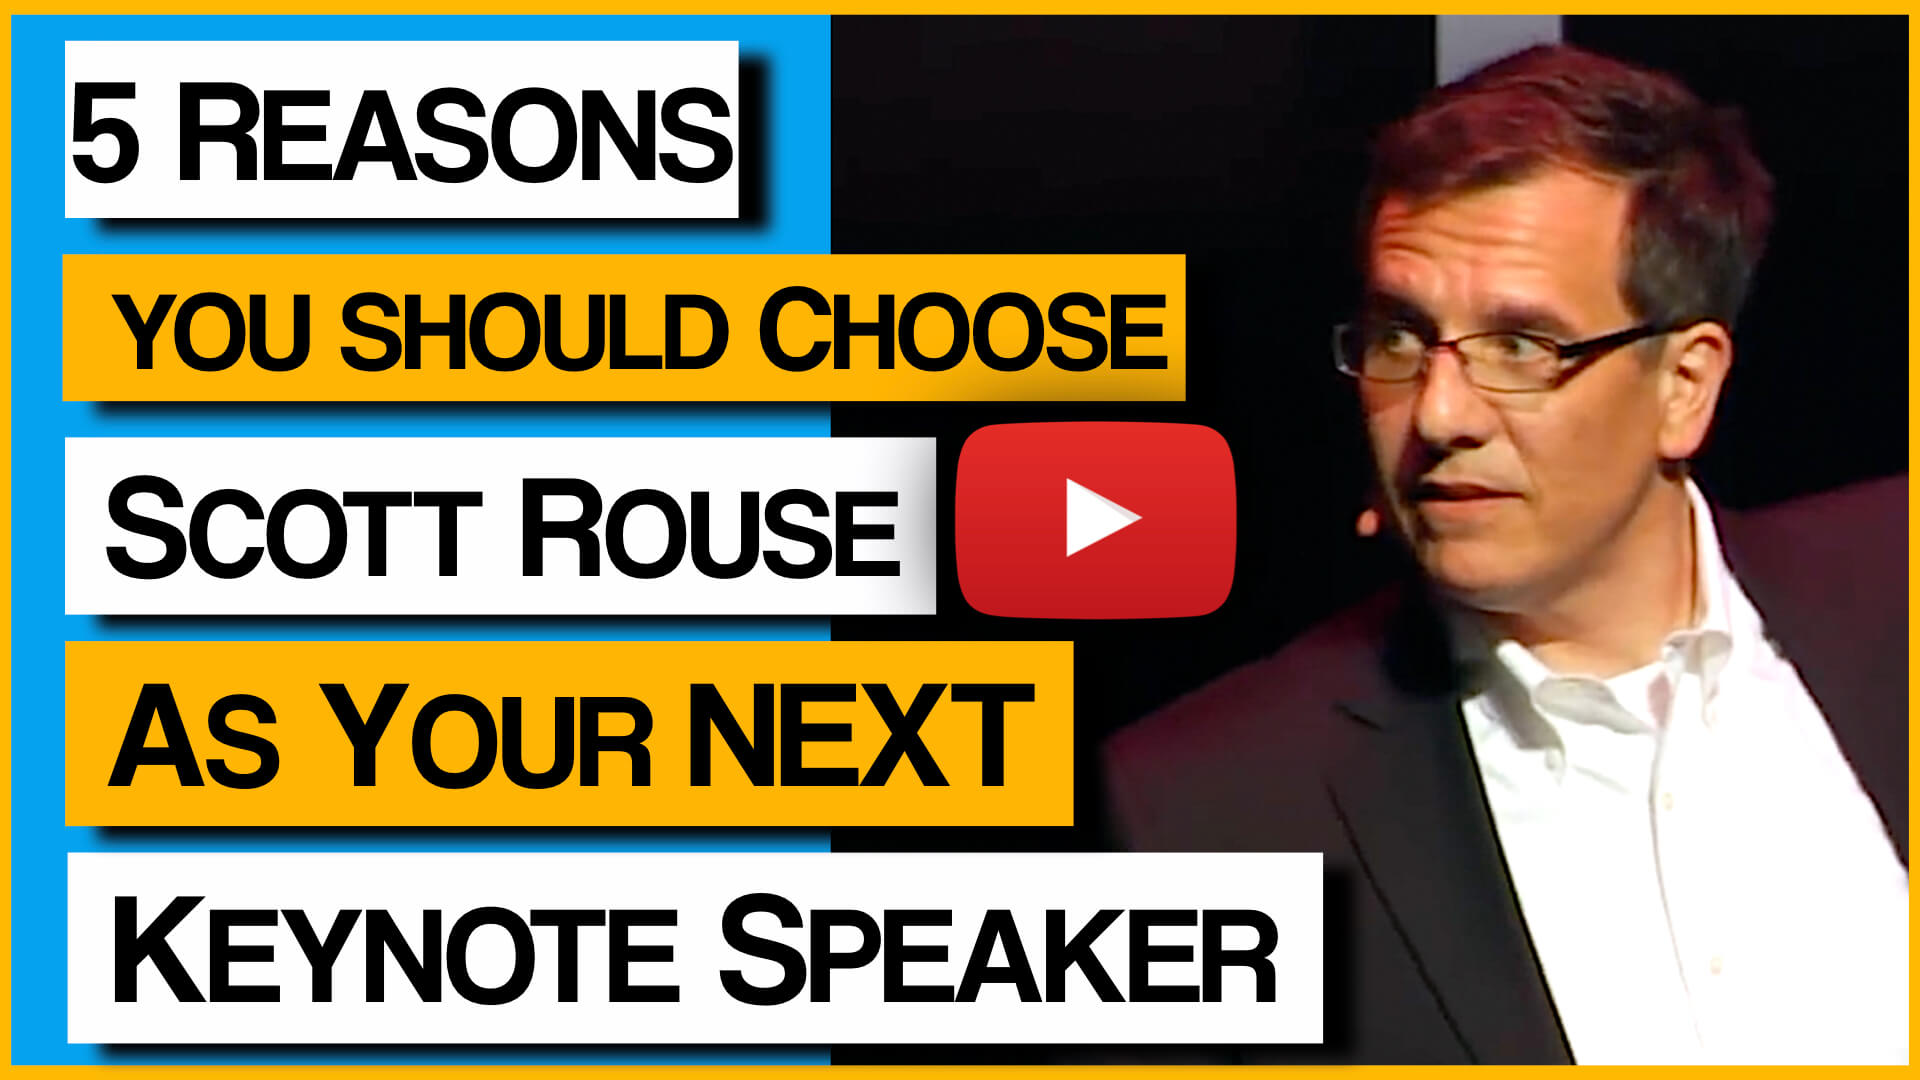 scott rouse - body language expert - keynote speaker - speaker - professional speaker